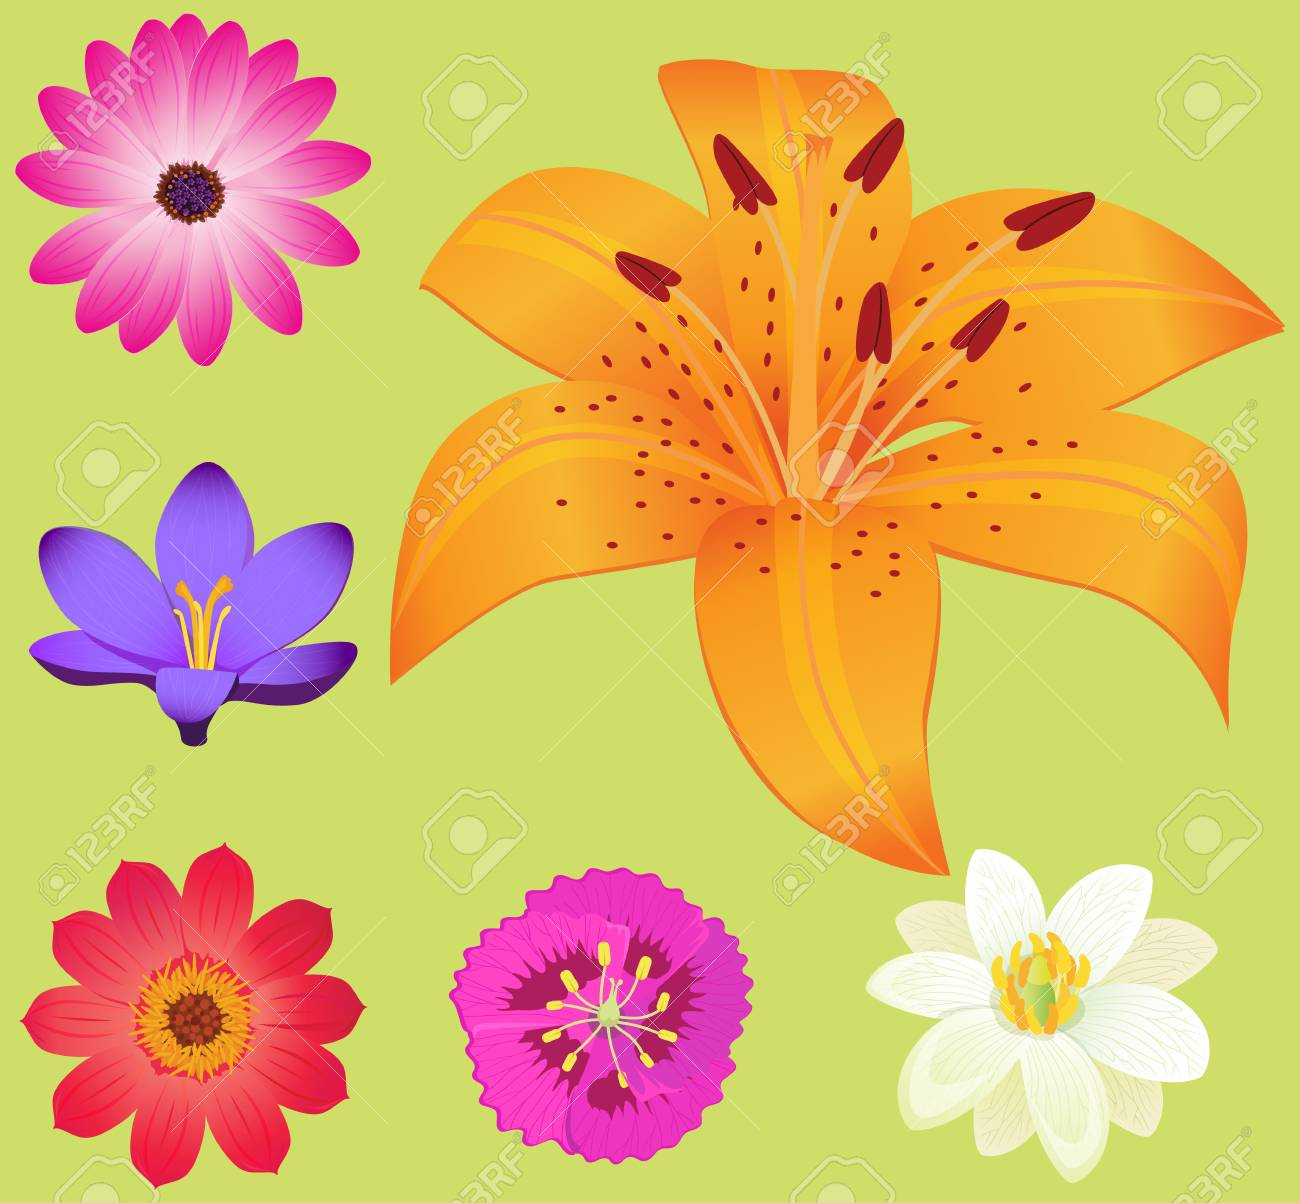 Yellow lily flower with smaller blossoms poster royalty free vector yellow lily flower with smaller blossoms poster izmirmasajfo